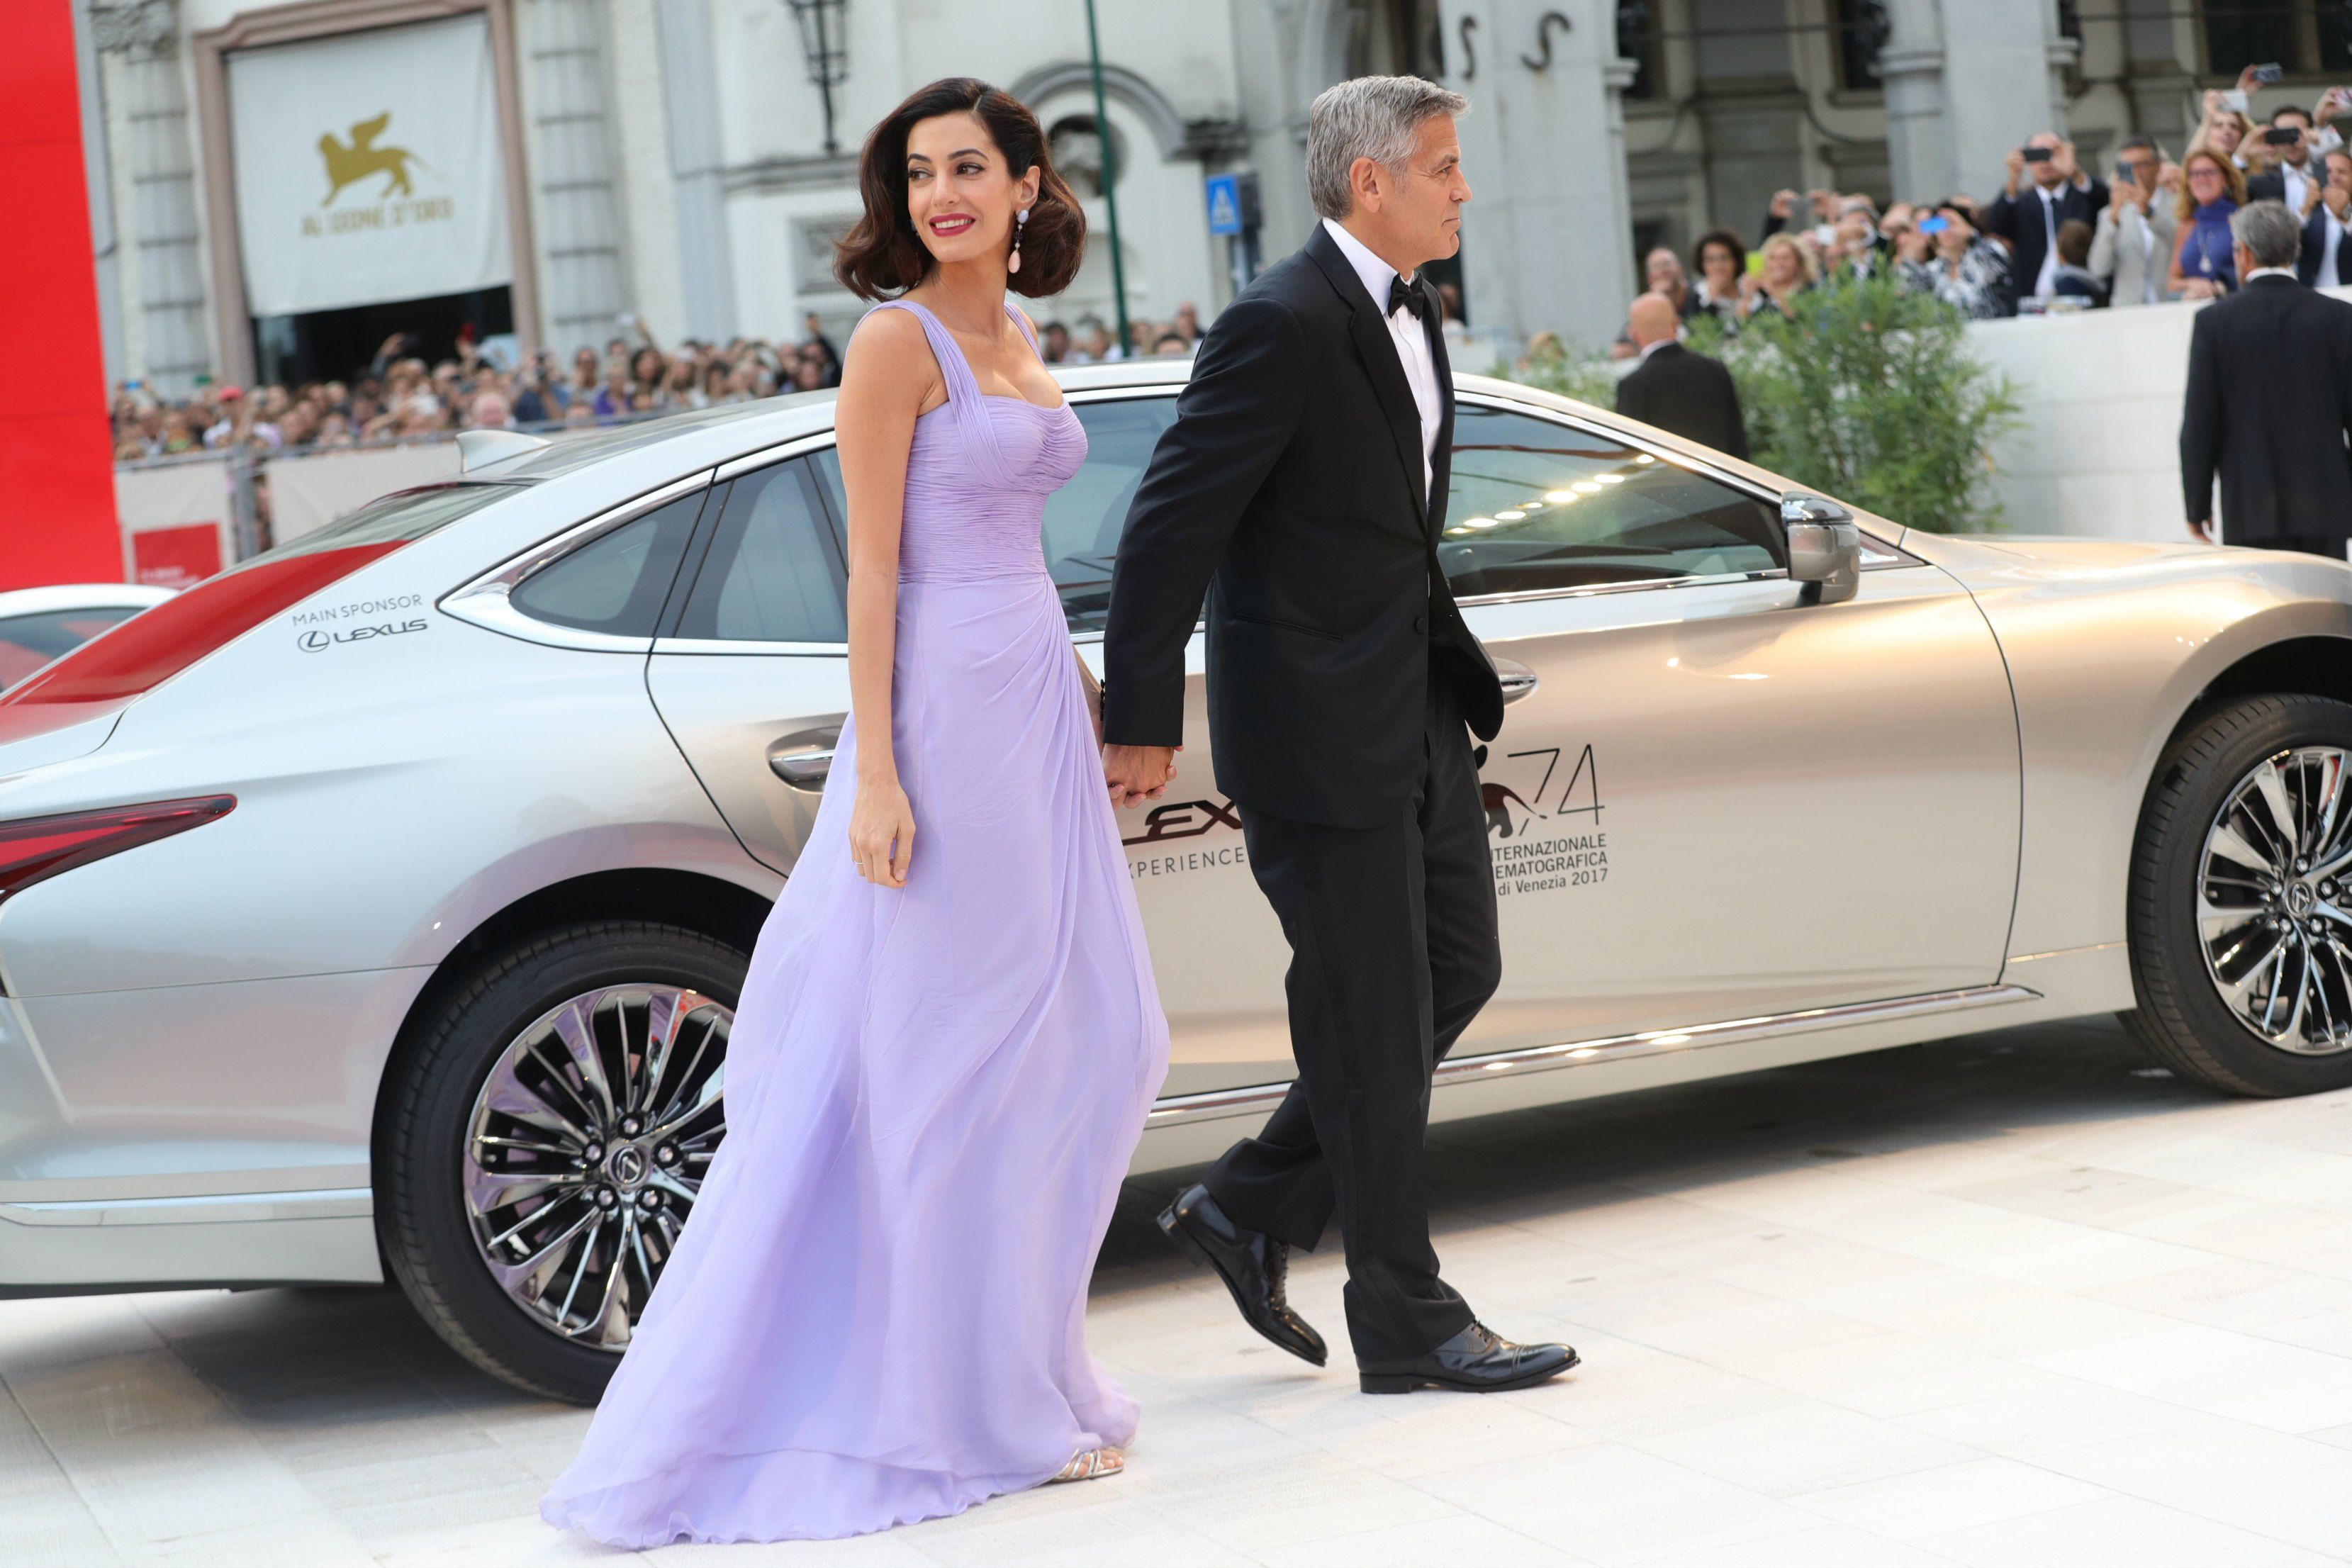 George and Amal Clooney at the Venice Film Festival 2017